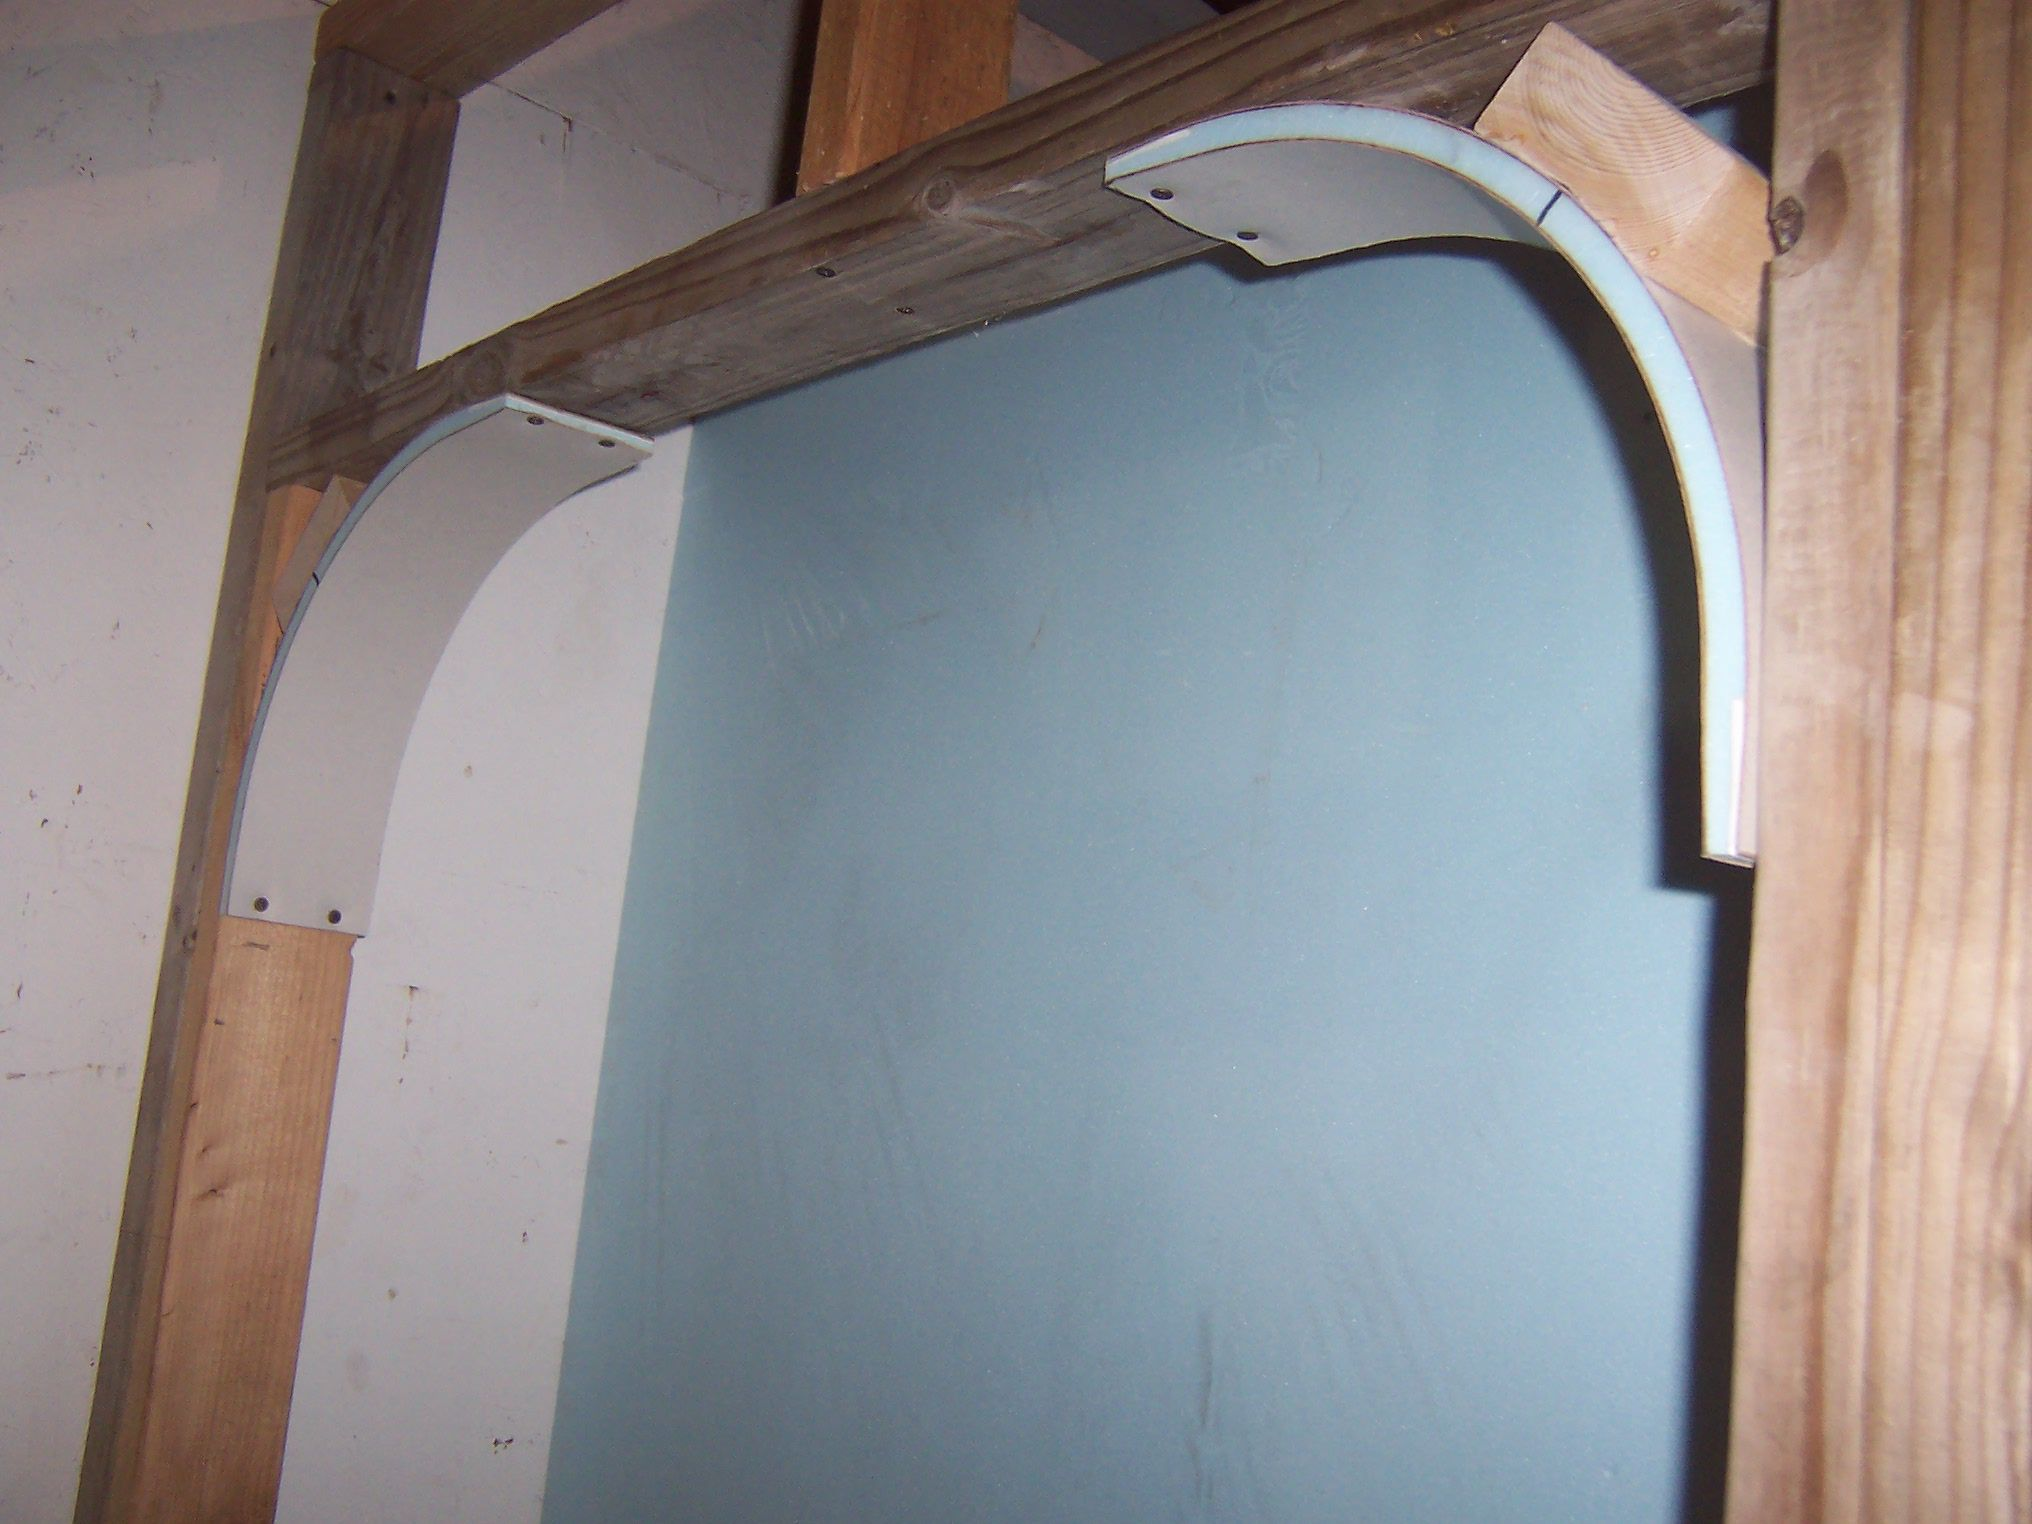 Pre made drywall arches simplest possible way to create - Wallpapering around a curved corner ...